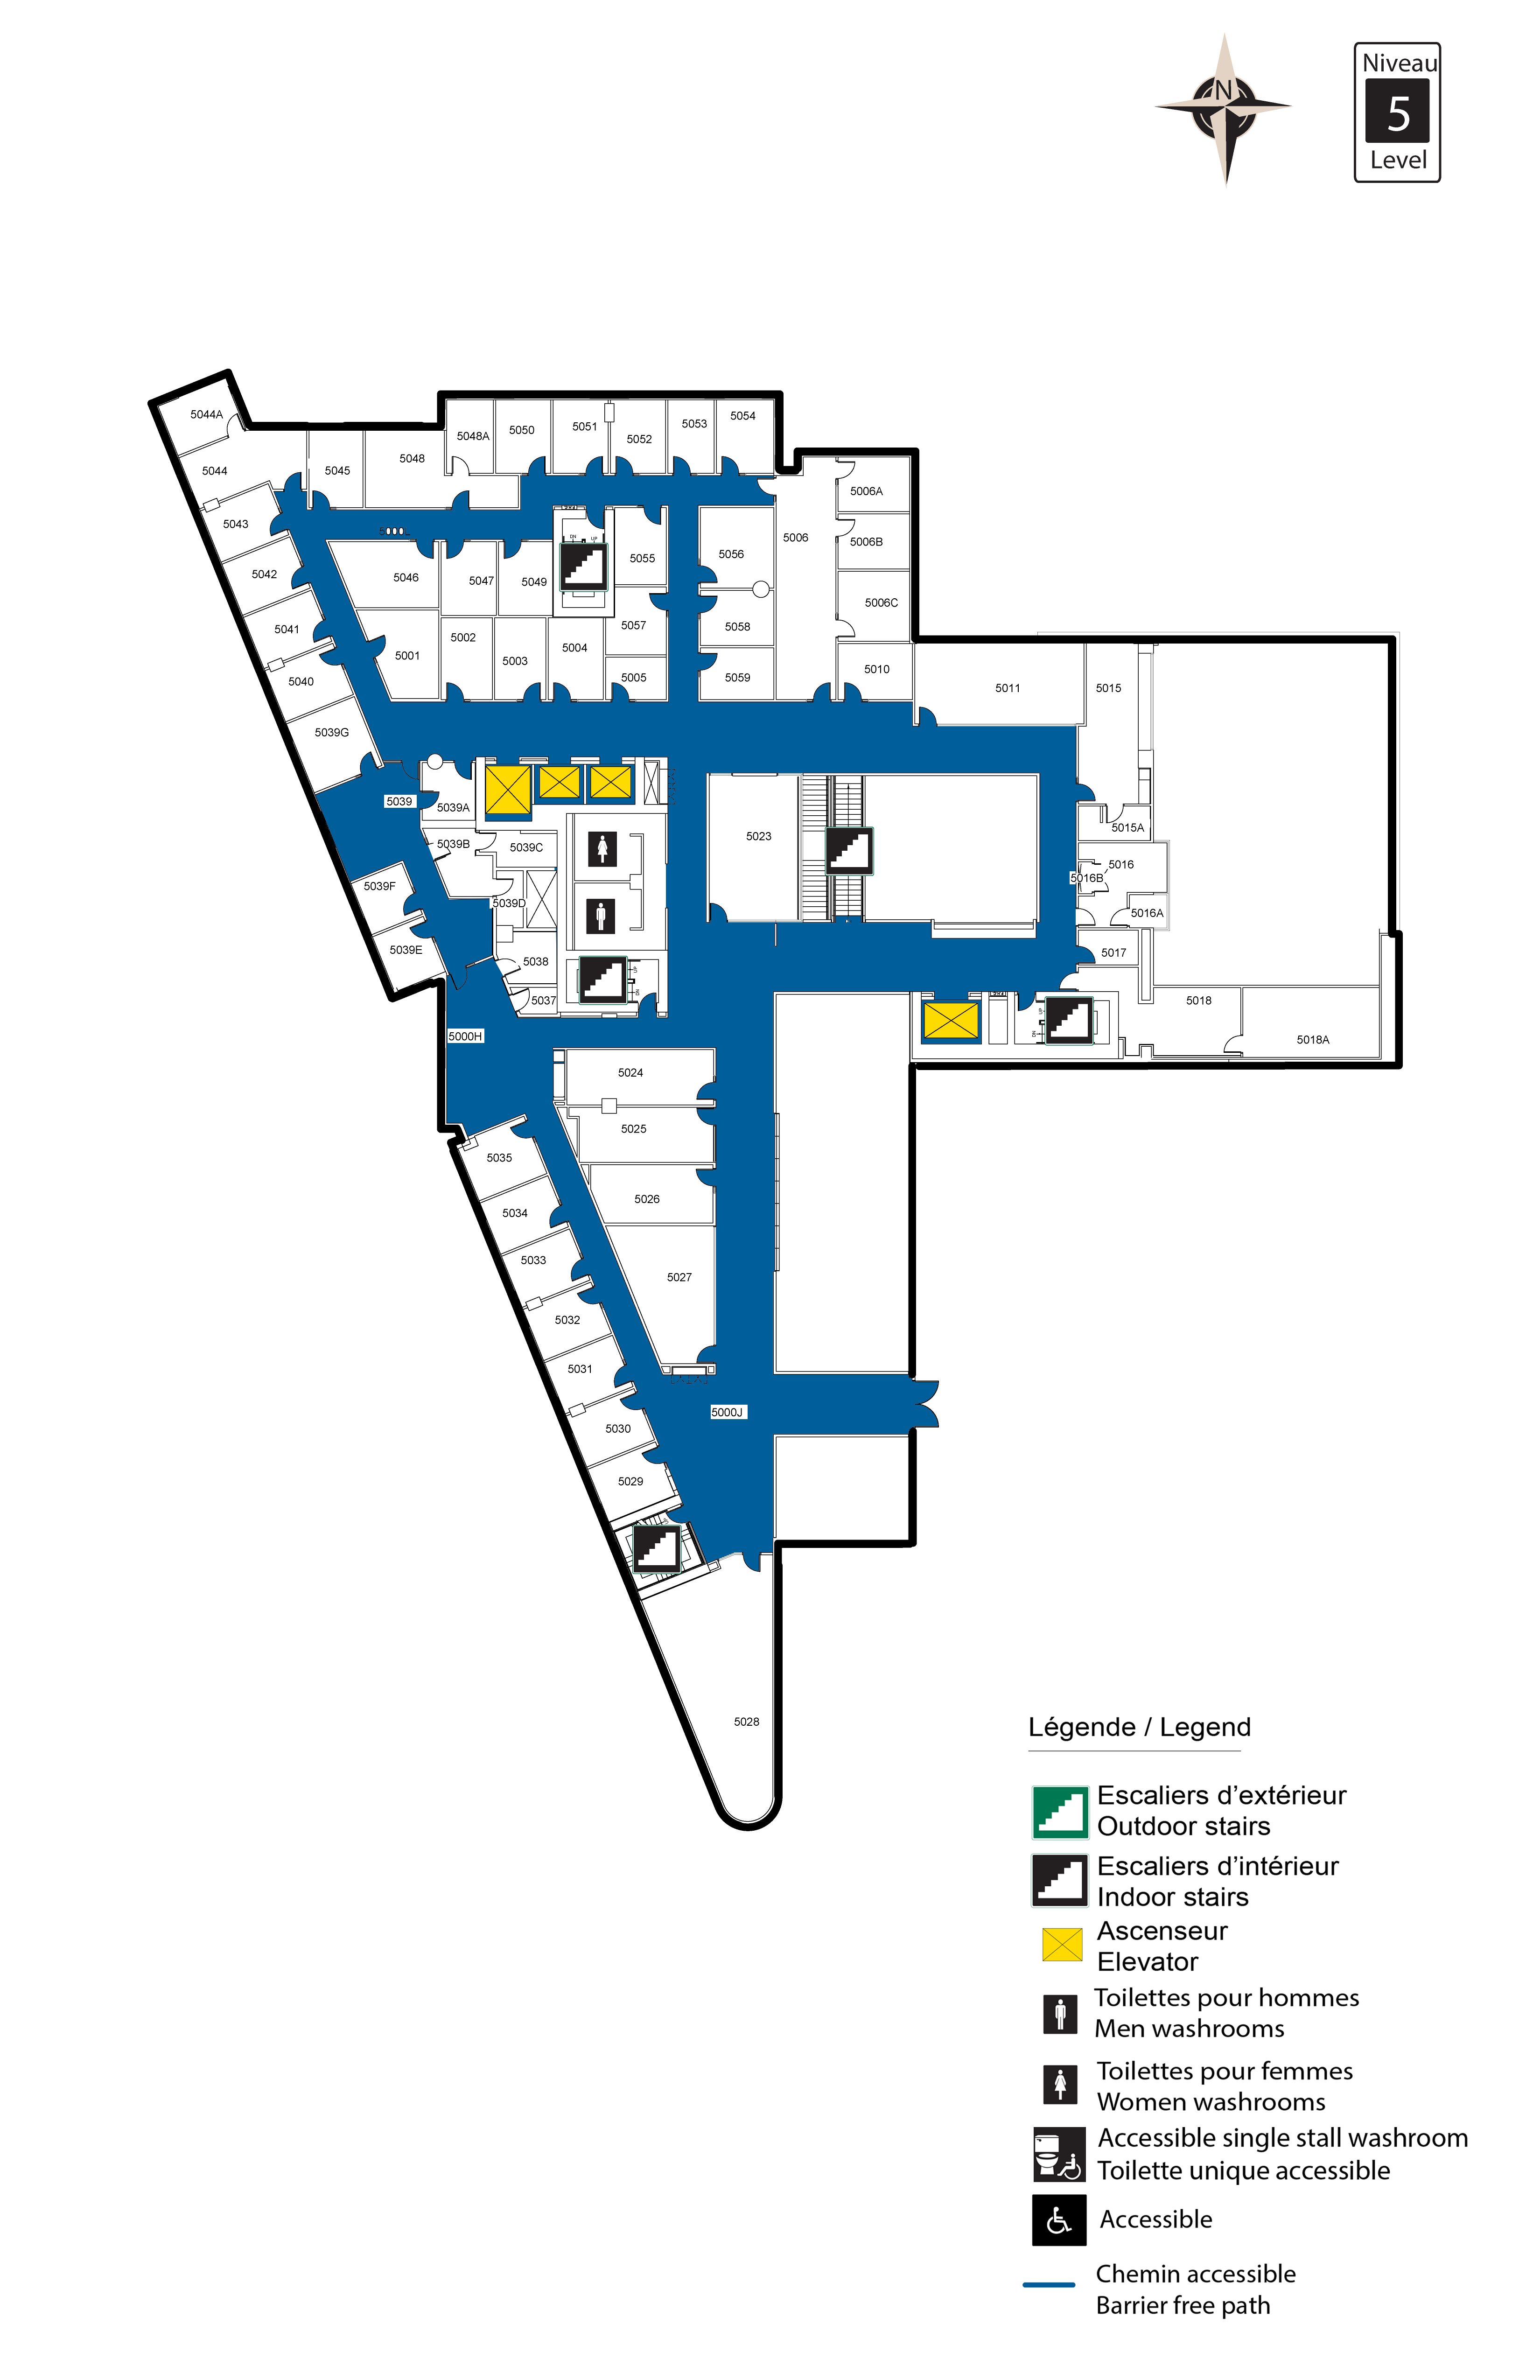 Accessible Map - FSS Level 5